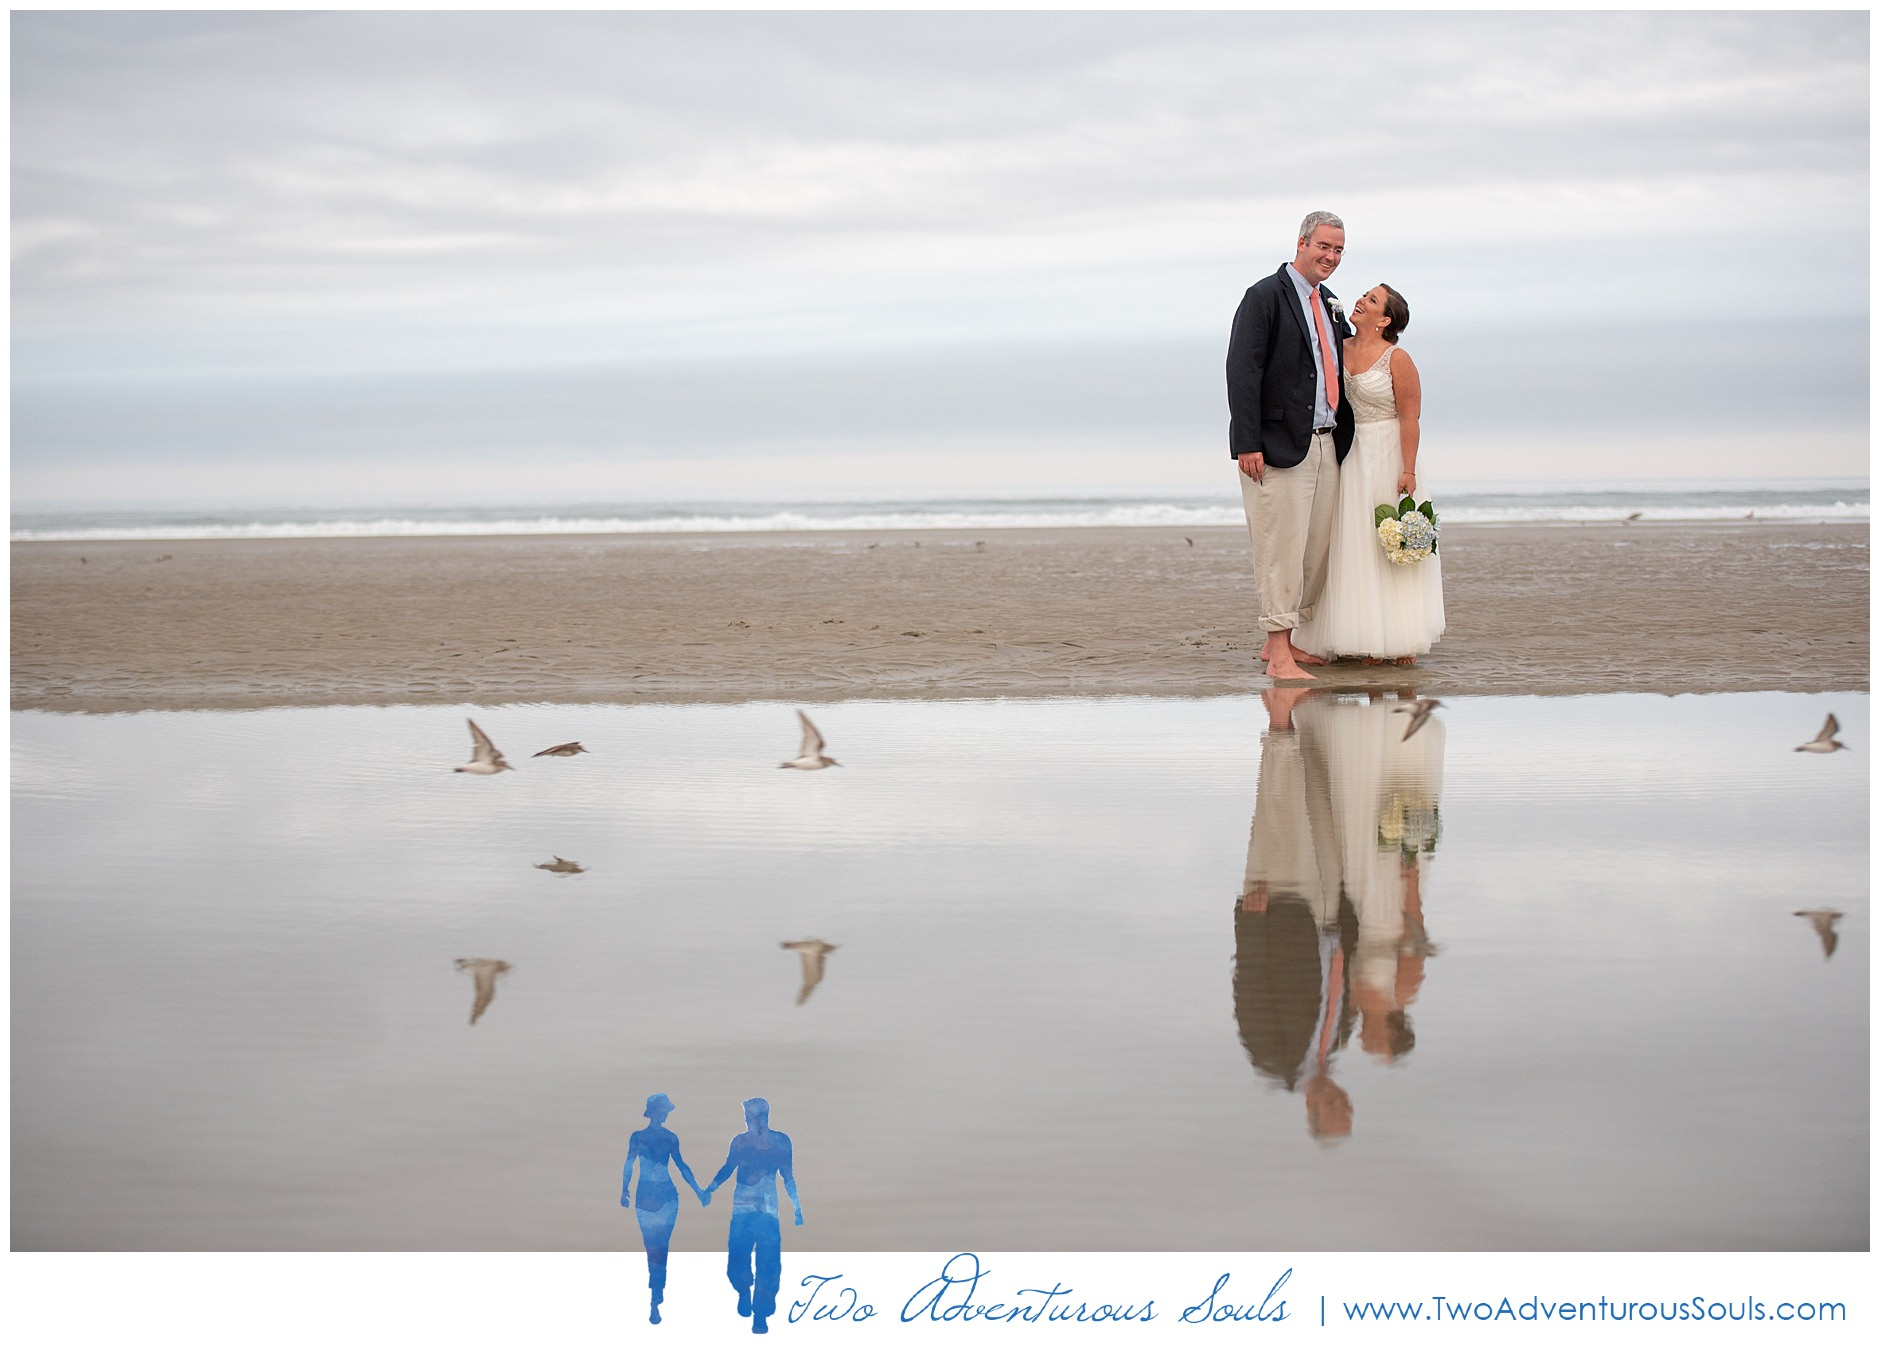 Maine Wedding Photographers, Ogunquit Wedding Photographers, Maine Elopement Photographers, Two Adventurous Souls-080619_0035.jpg